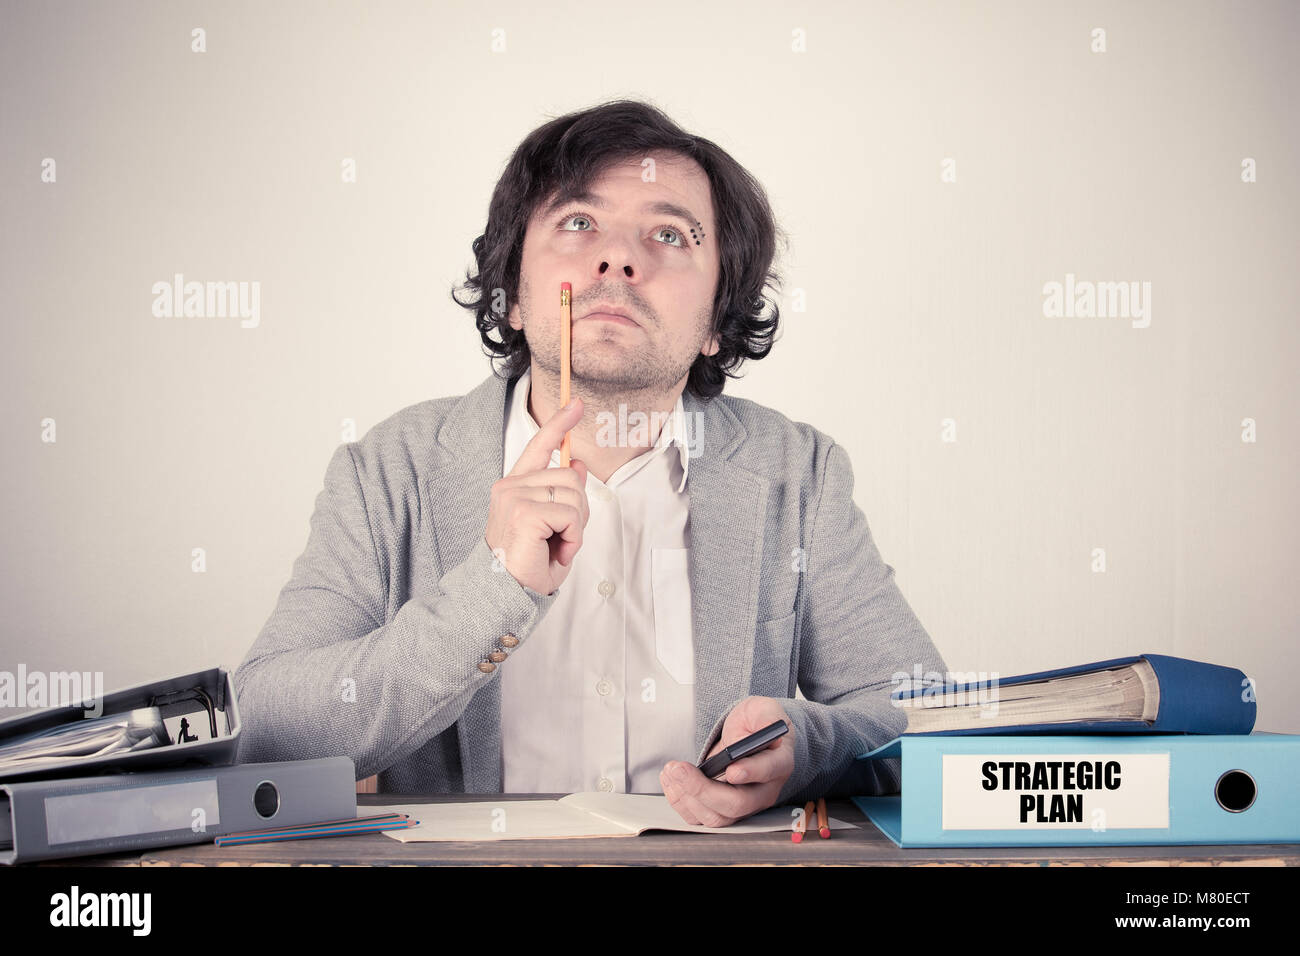 Strategic Plan text on the binder, worried bussinesman thinking by the work desk - Stock Image